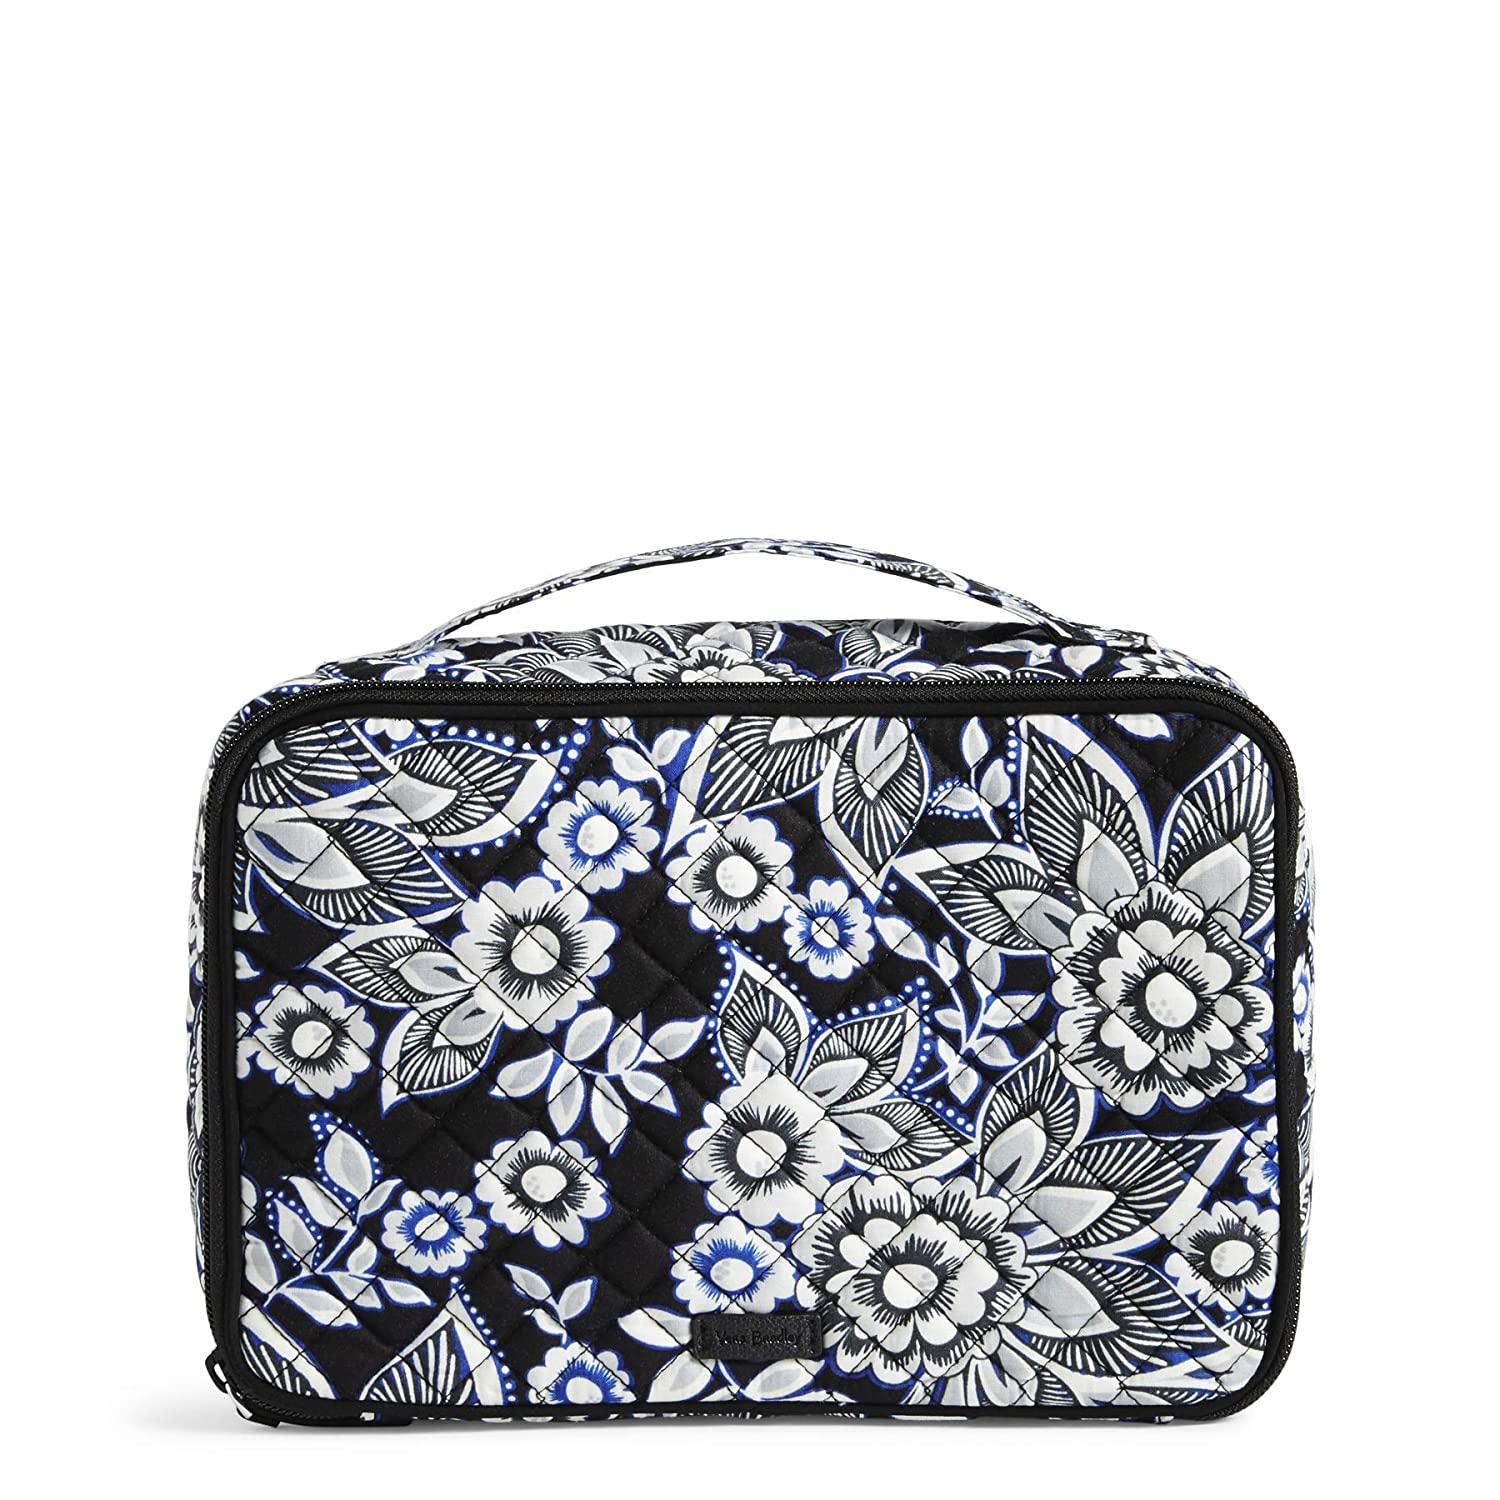 Vera Bradley Women's Signature Cotton Large Blush & Brush Cosmetic Makeup Case